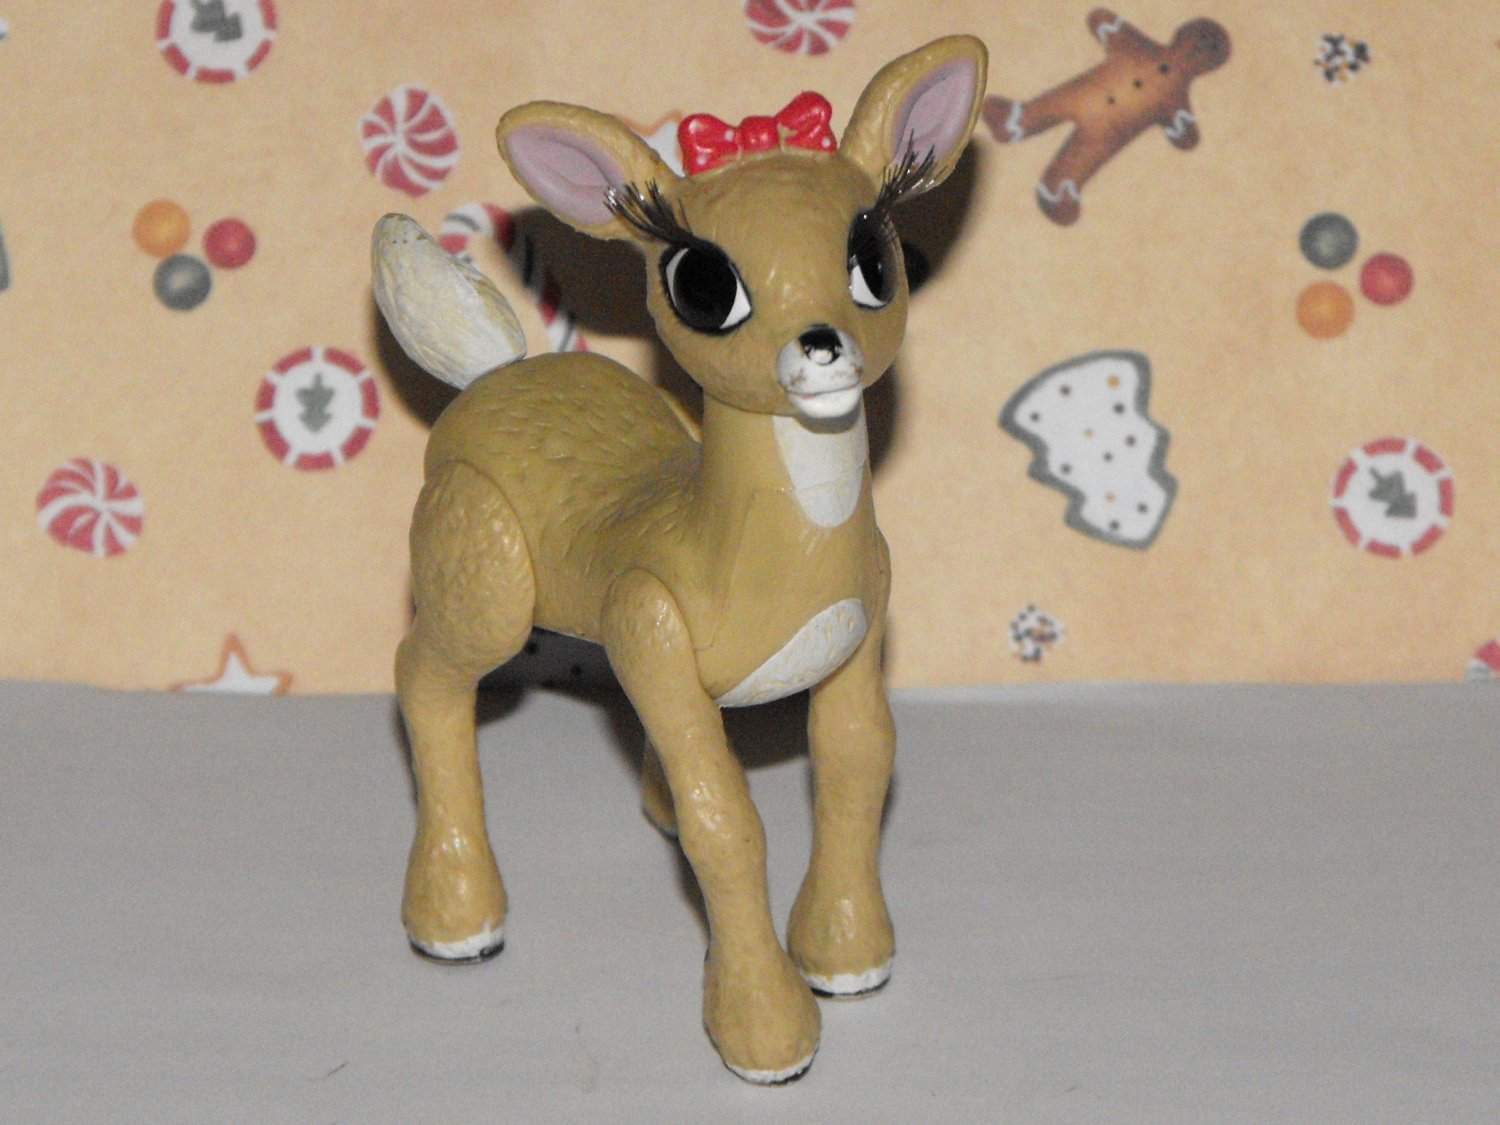 *SOLD~Awaiting Feedback~Memory Lane Rudolph The Red Nosed Reindeer Clarice